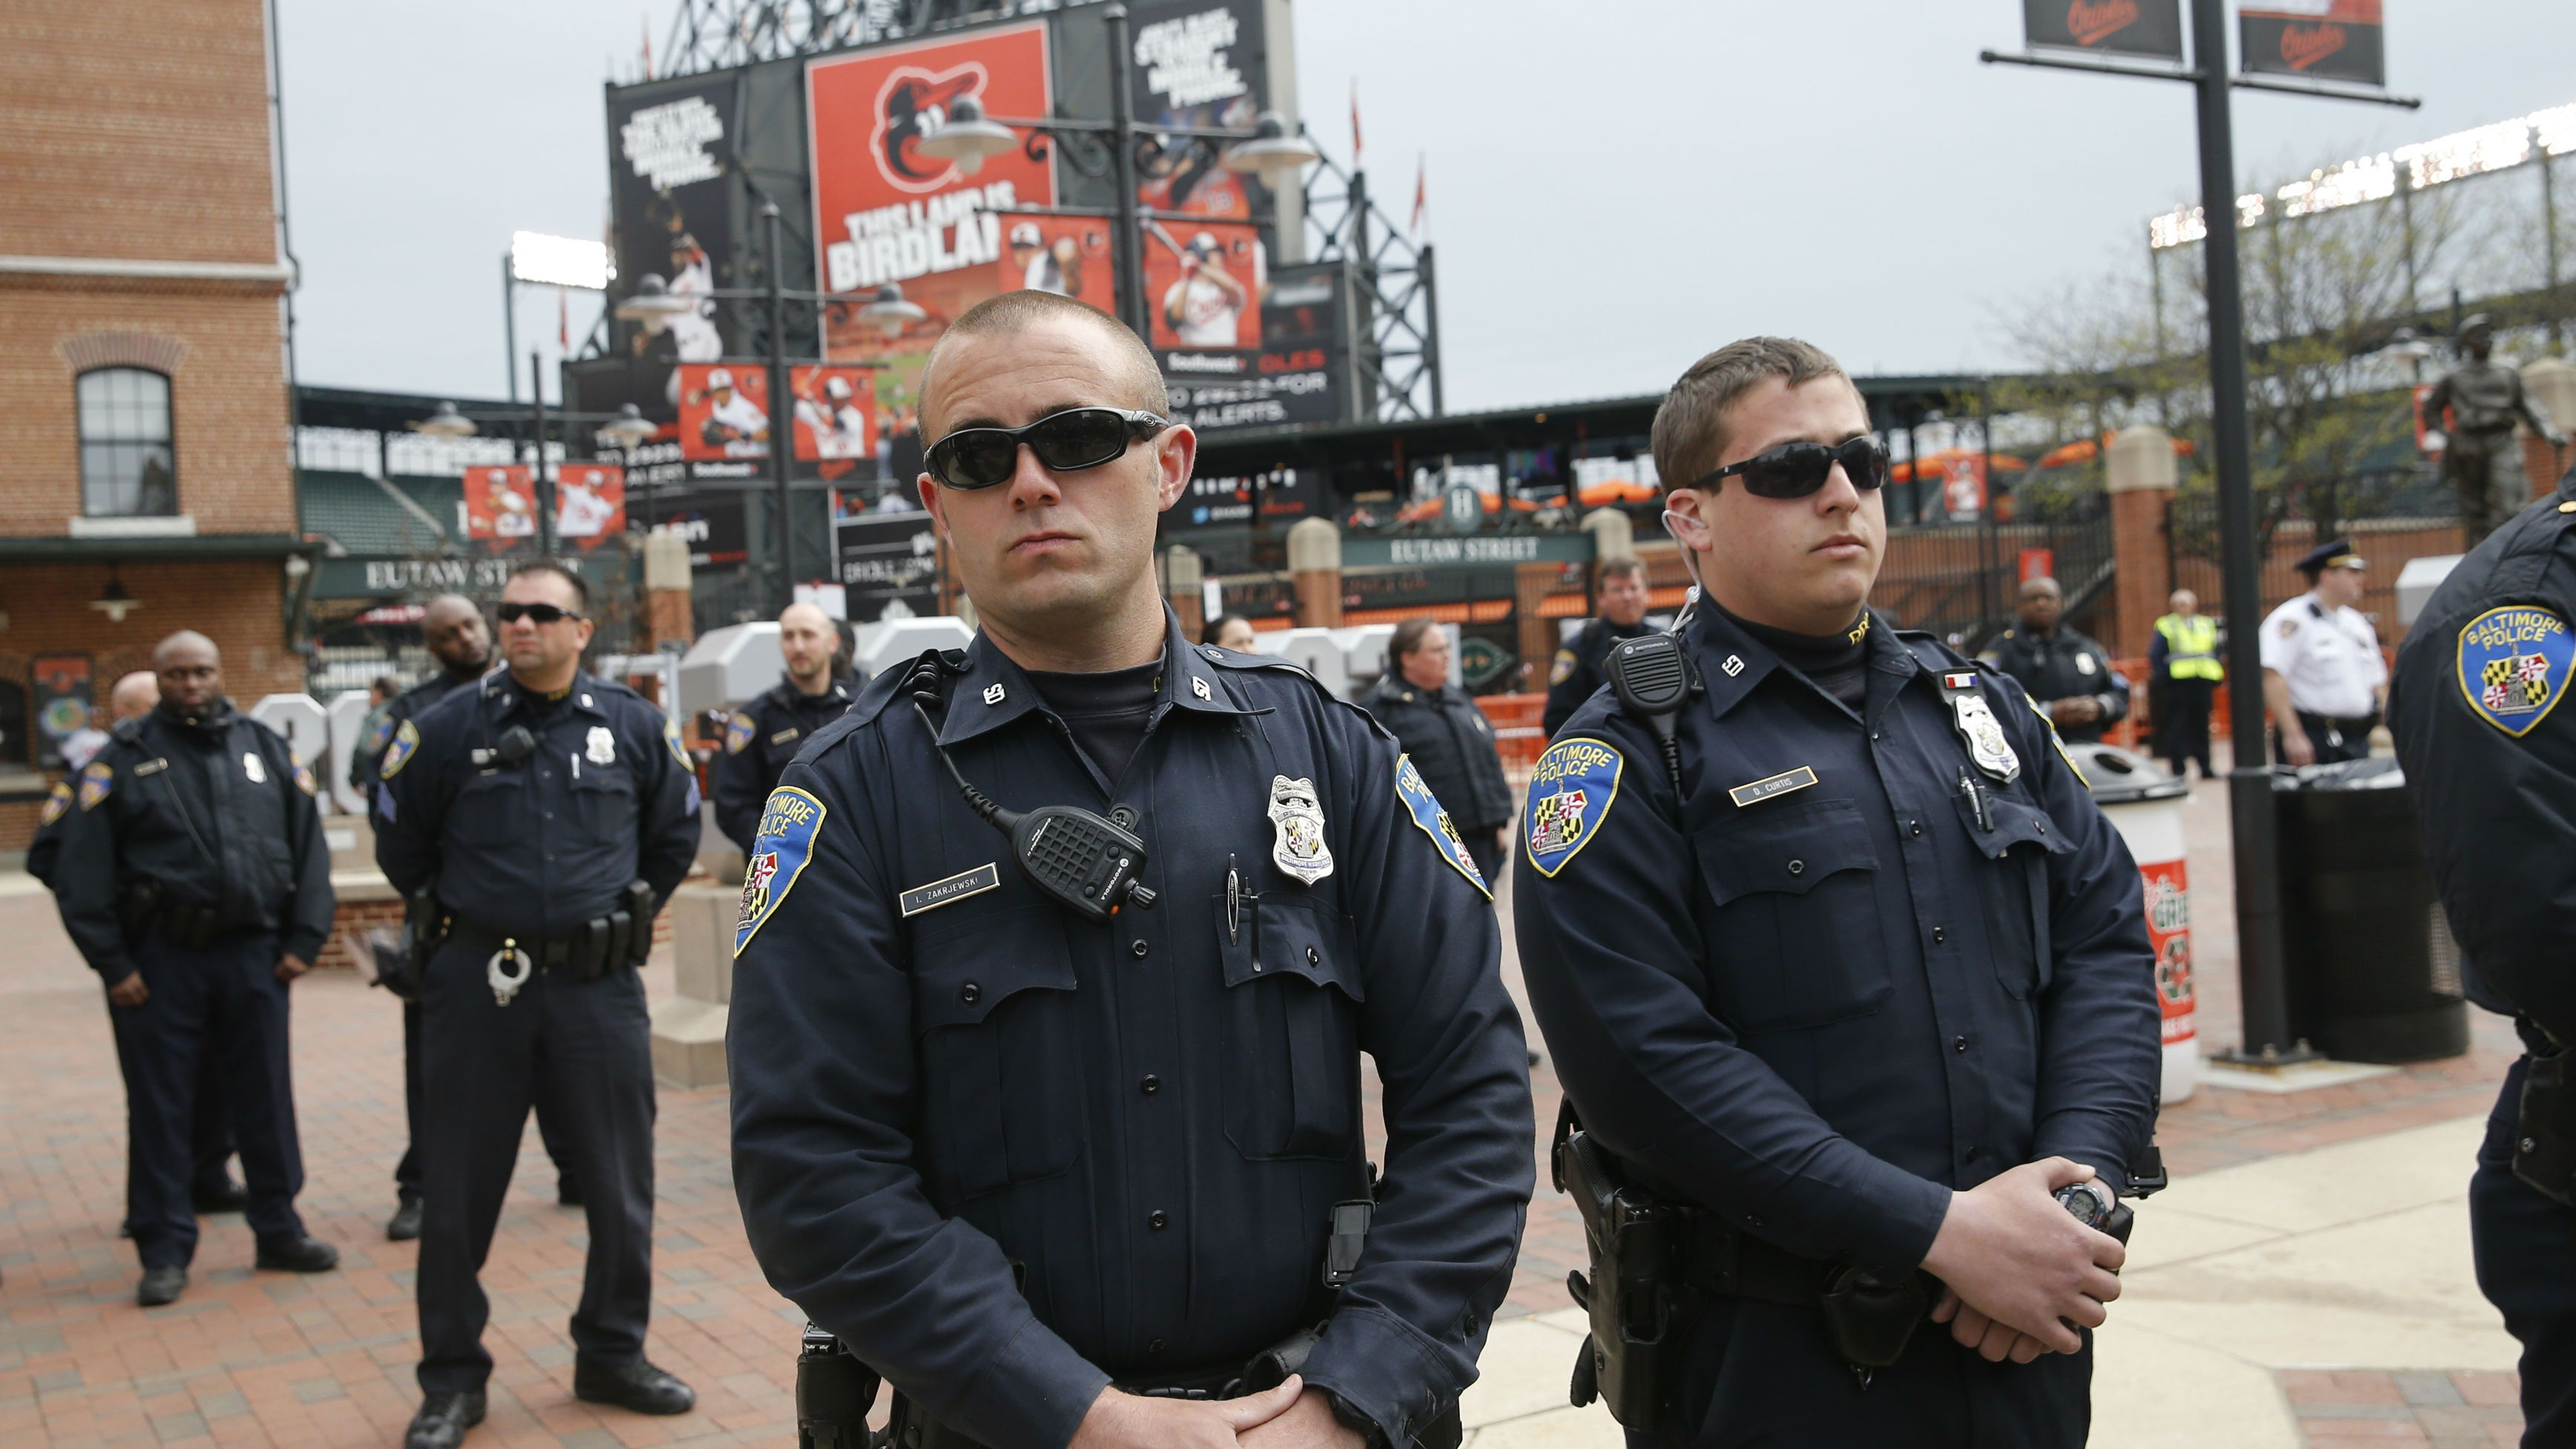 Baltimore Orioles protests Camden Yards